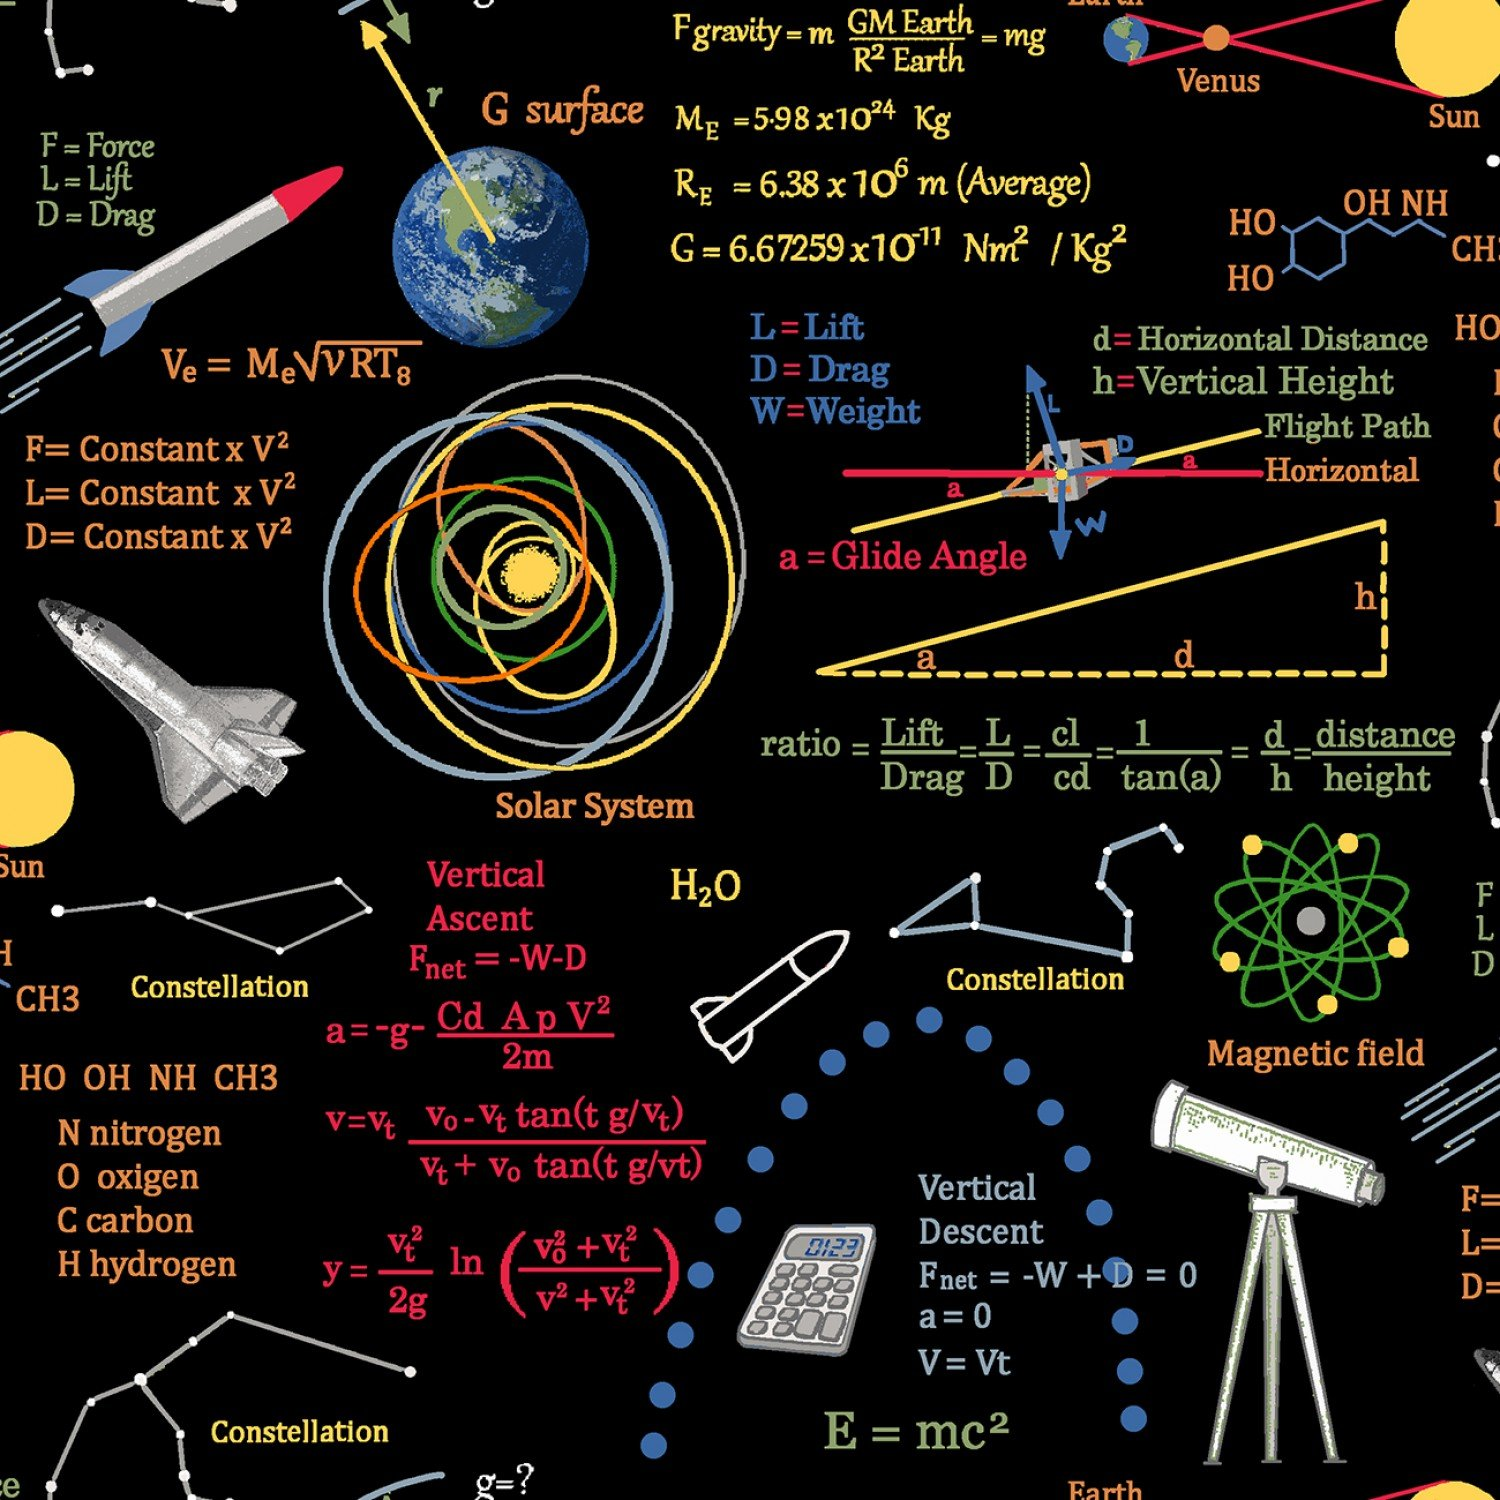 SE-Planetary Missions 5306-94 Multi - Graphics and Formulas